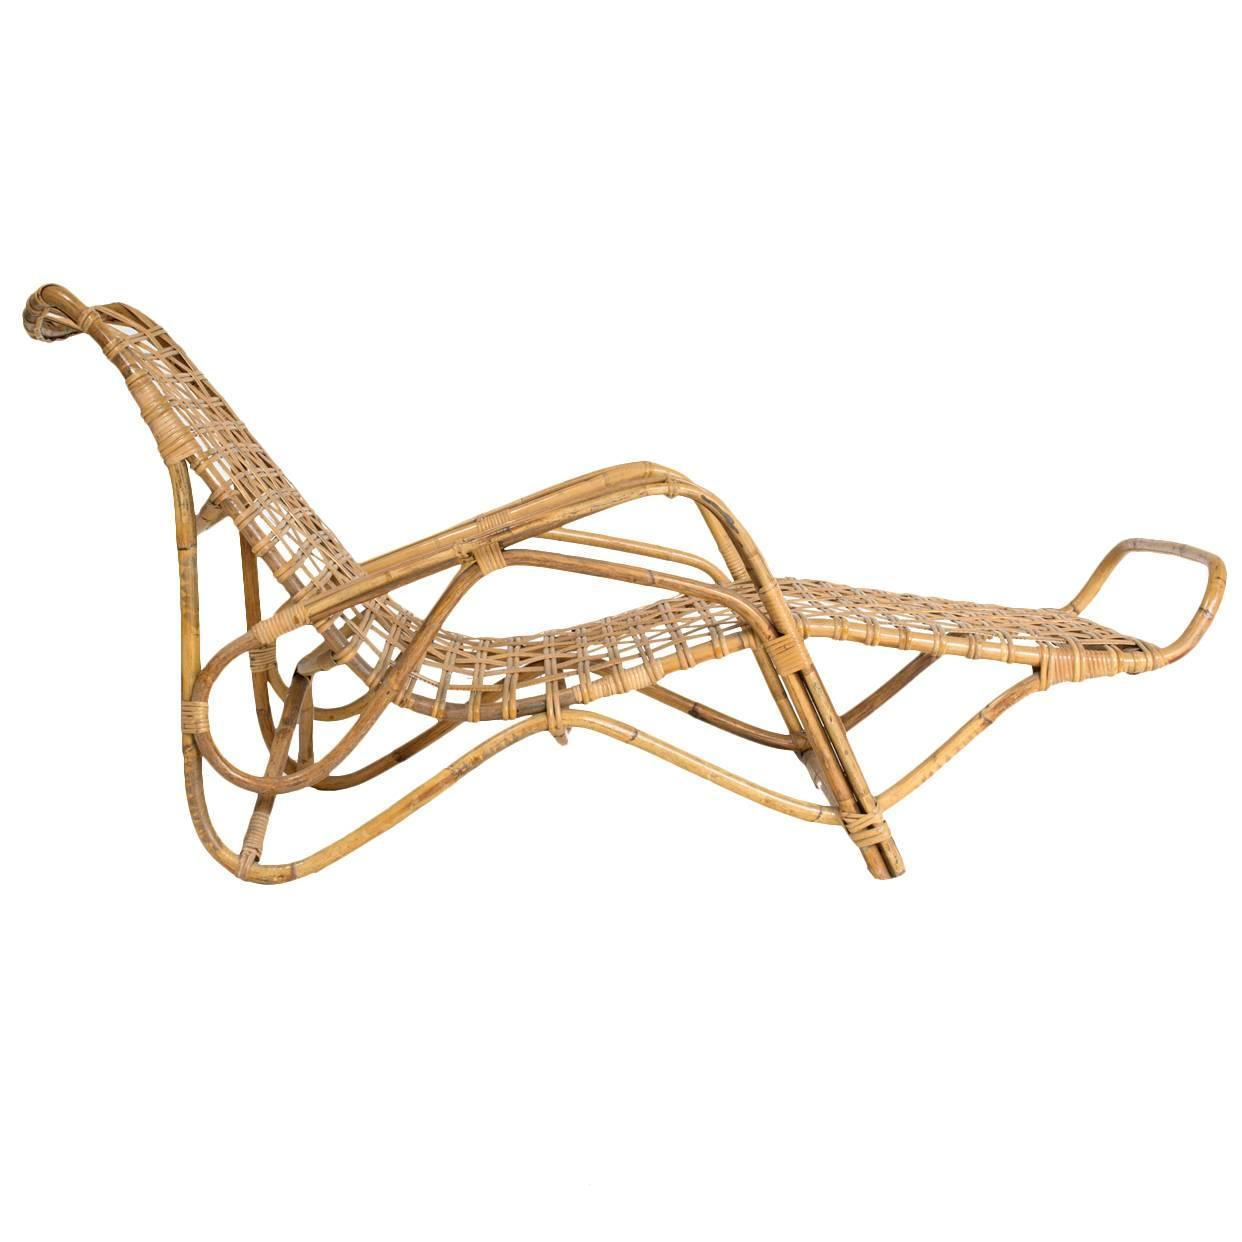 Vittorio bonacina rattan chaise longue for sale at 1stdibs for Barcelona chaise longue